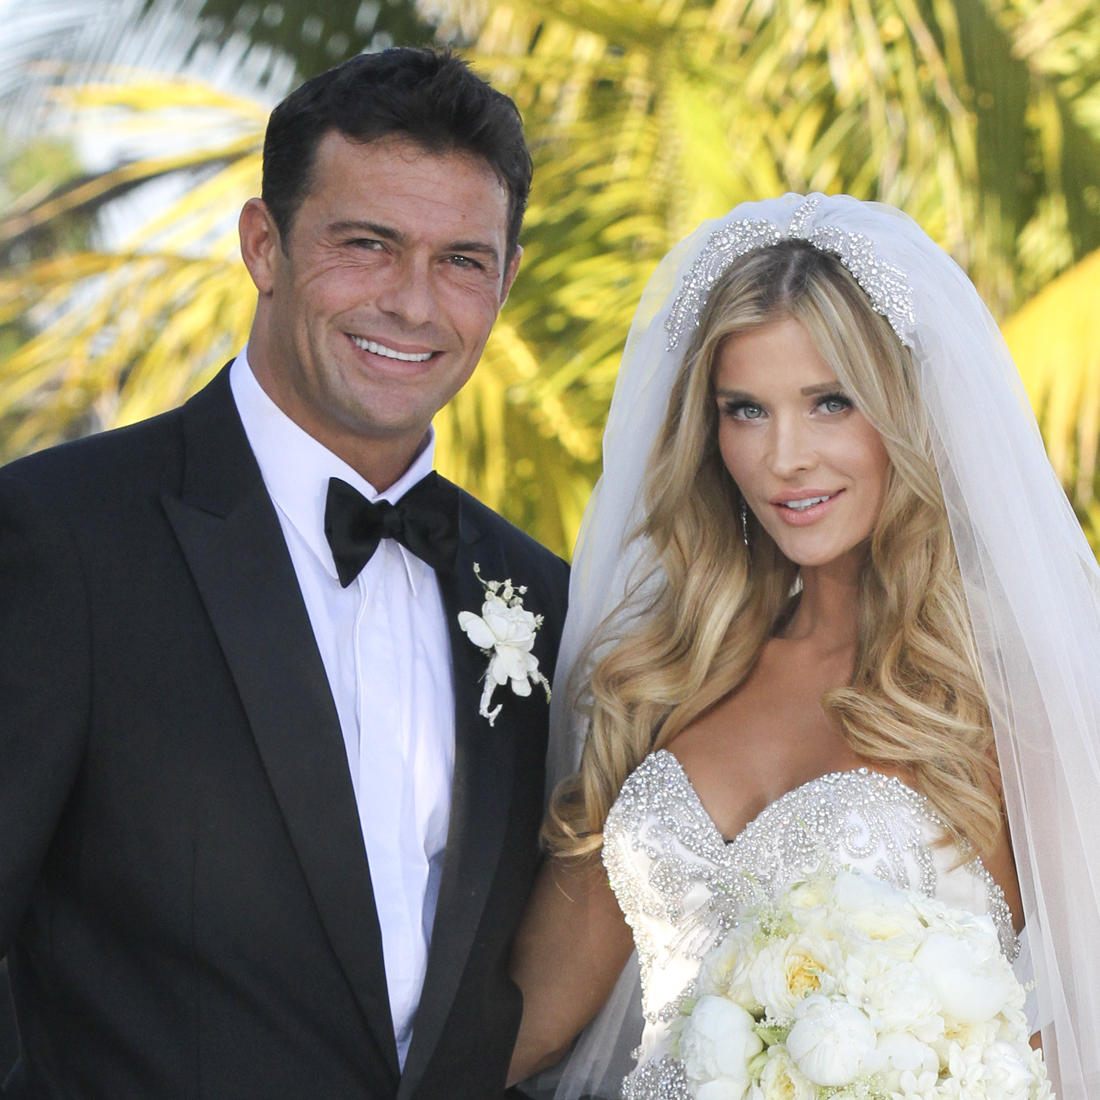 Joanna Krupa's million-dollar princess wedding